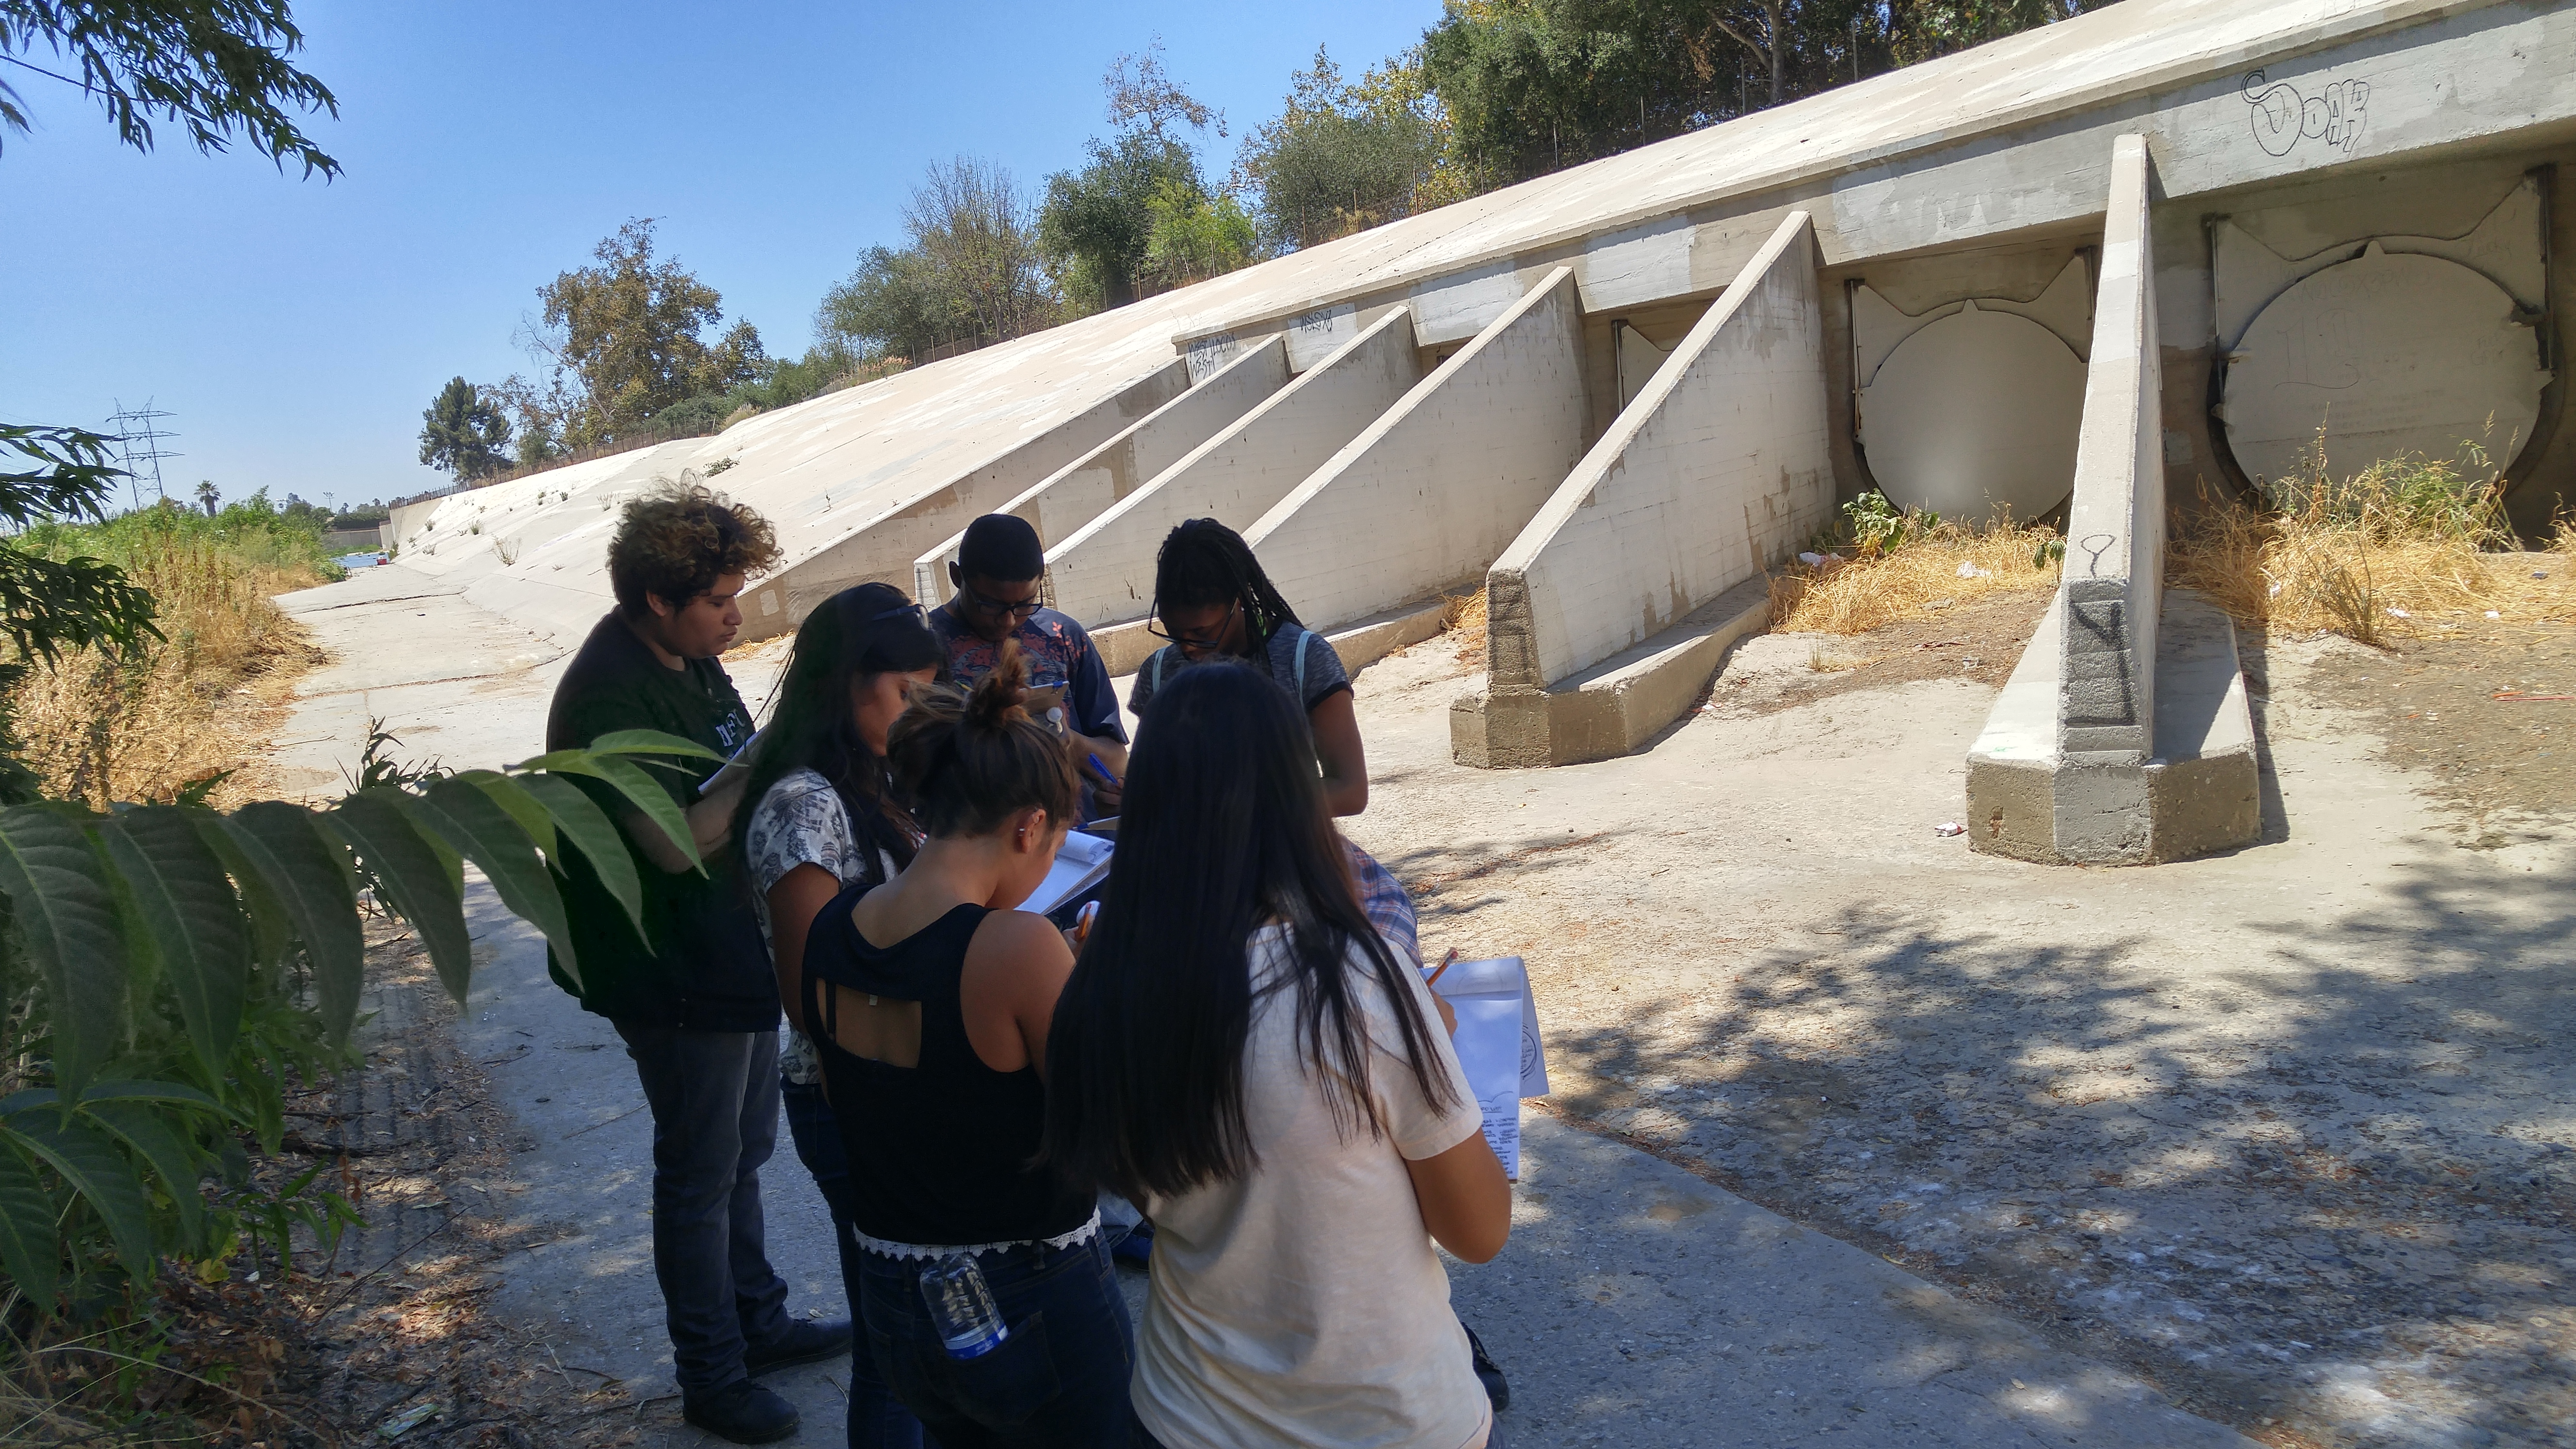 Participants document grey infrastructure along the Los Angeles River. [Photo Credit: Yanin Kramsky]